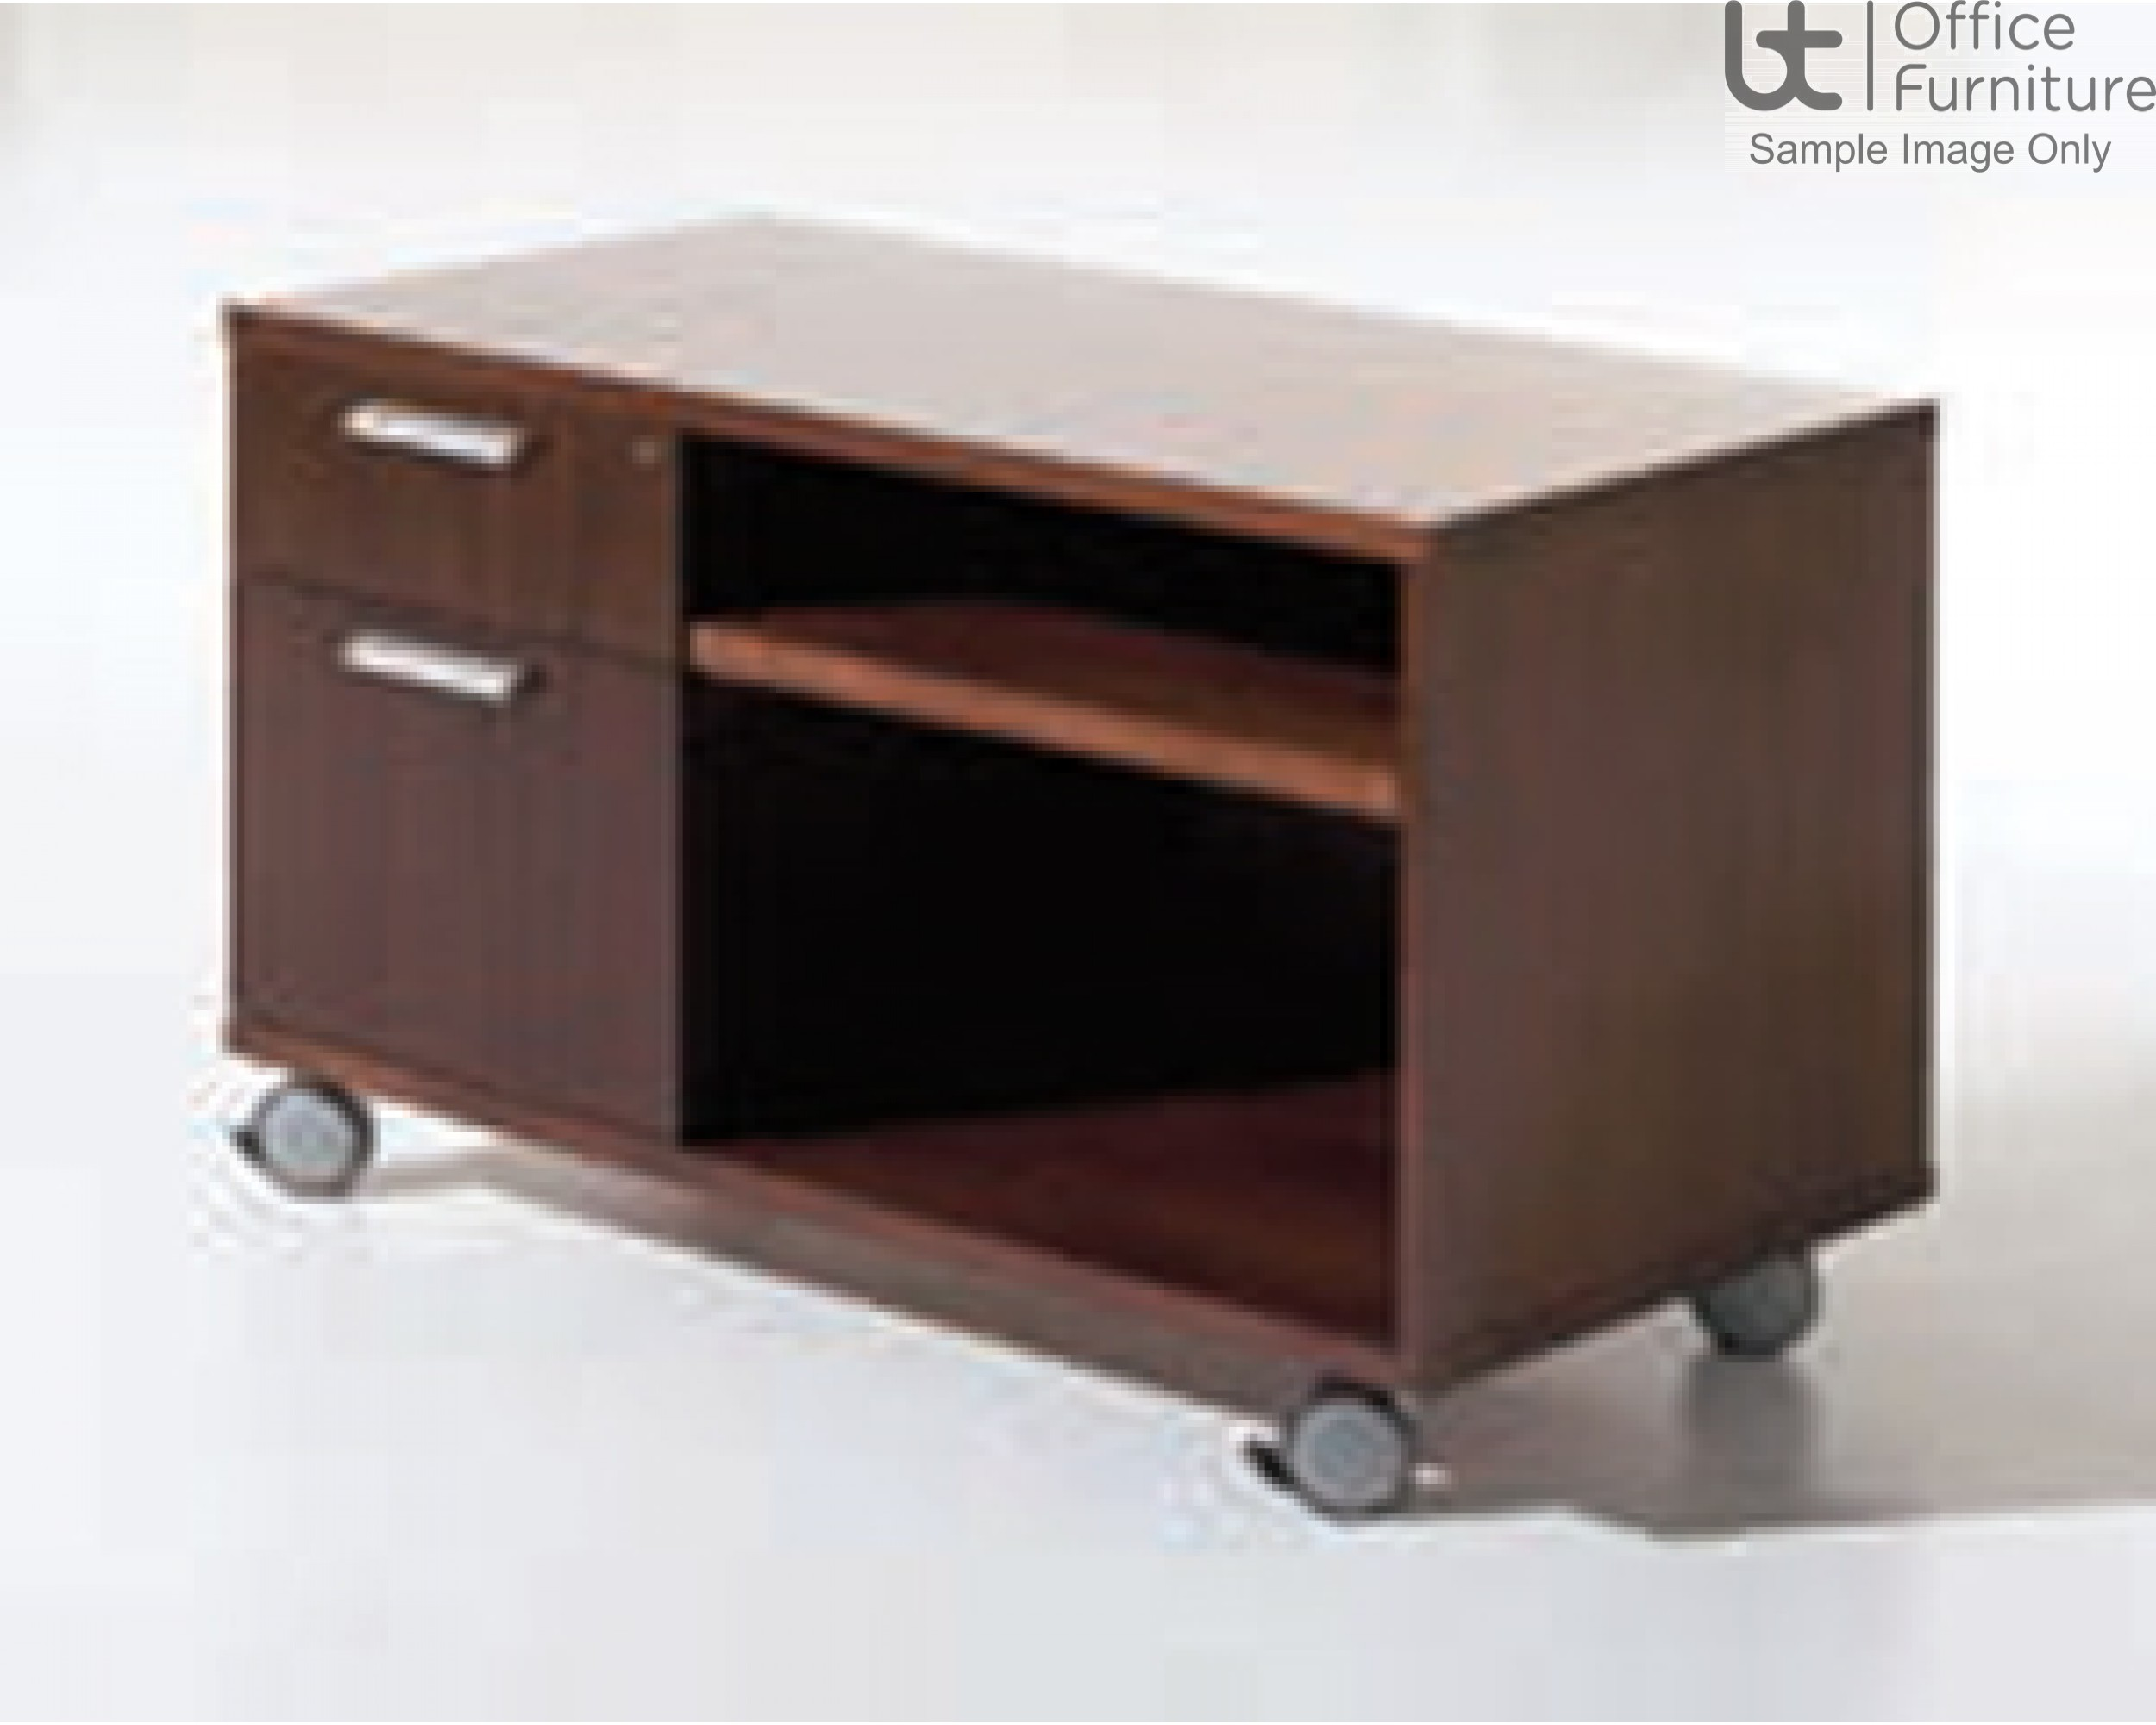 Verco Intuition Mobile Storage Unit with 2 Drawer Pedestal and Pull-Out Shelf